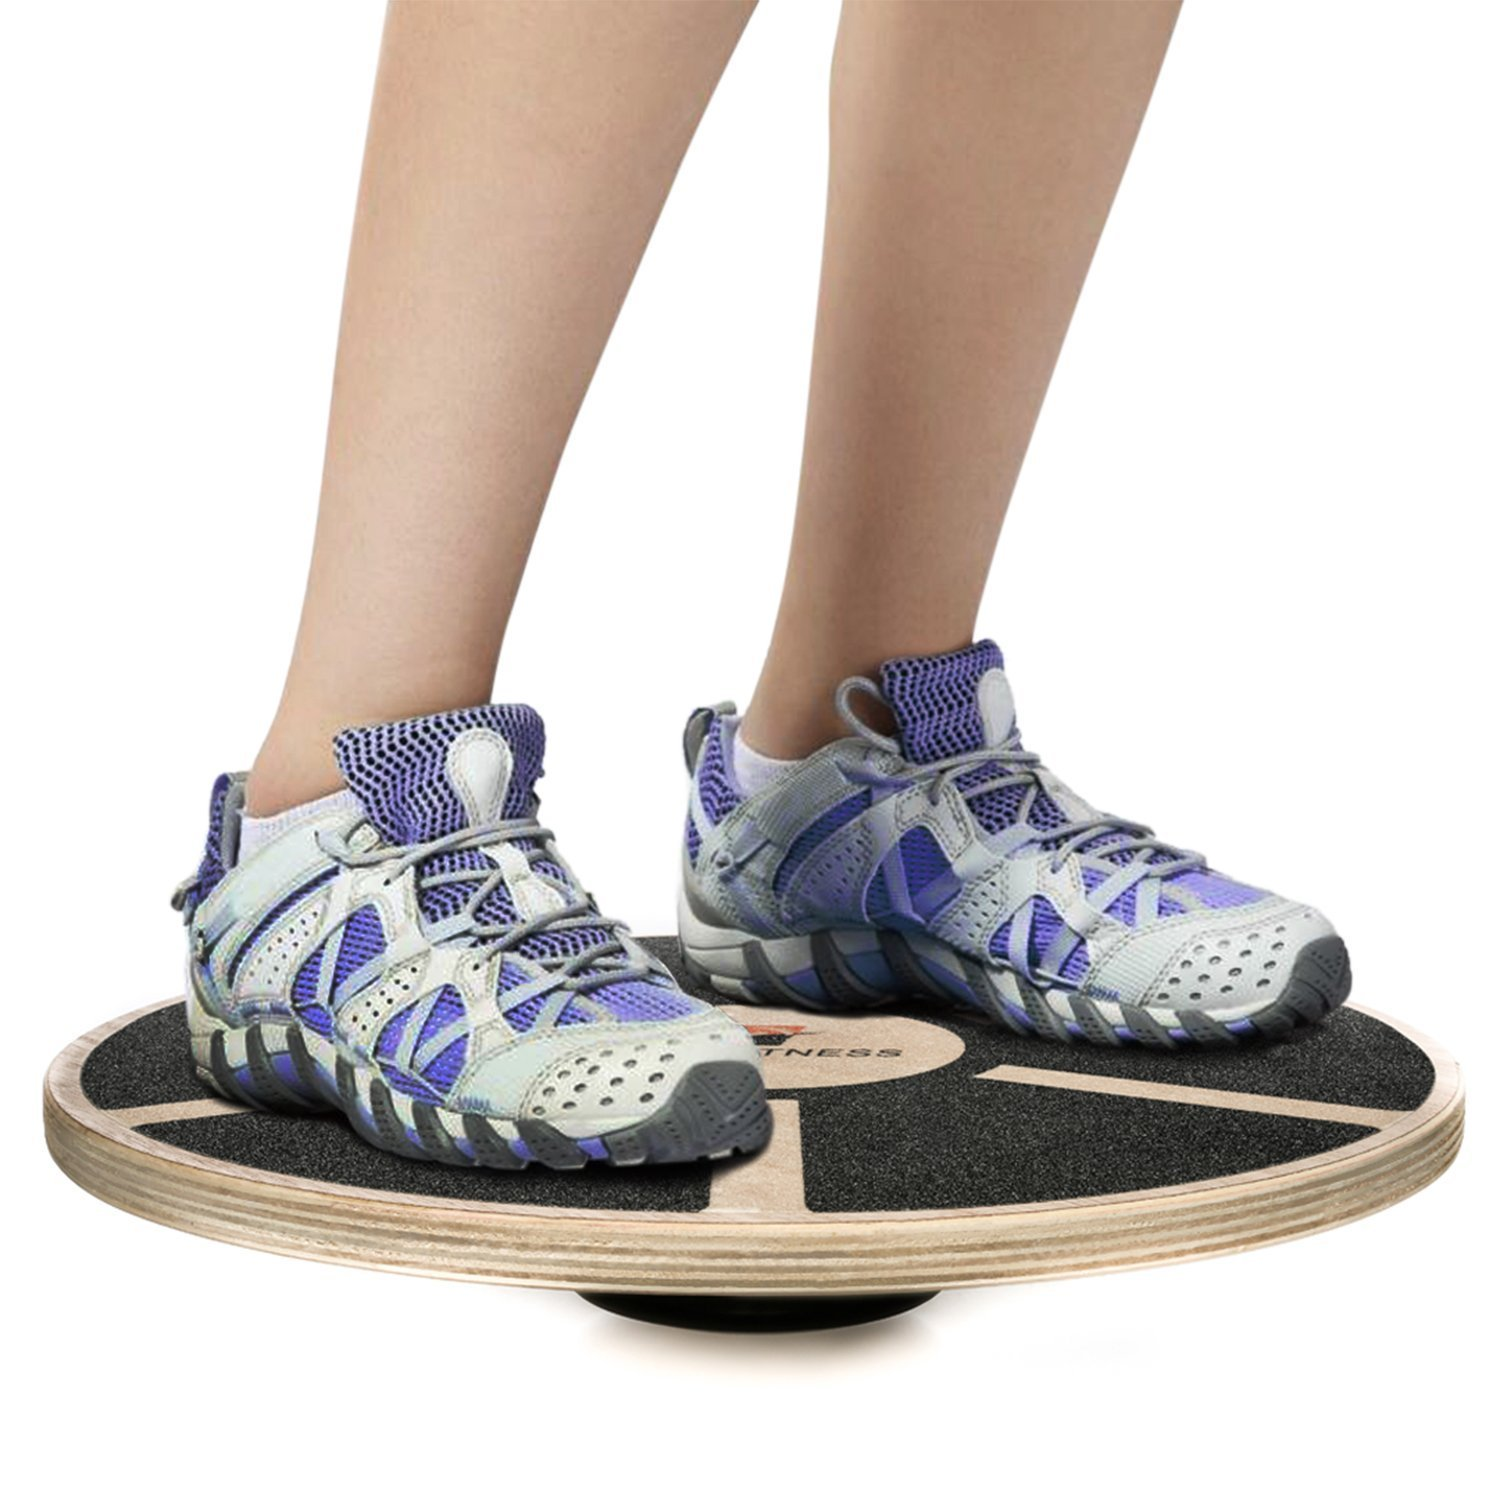 Balance Board Exercises For Back: Best Gifts And Toys For 18 Year Old Girls